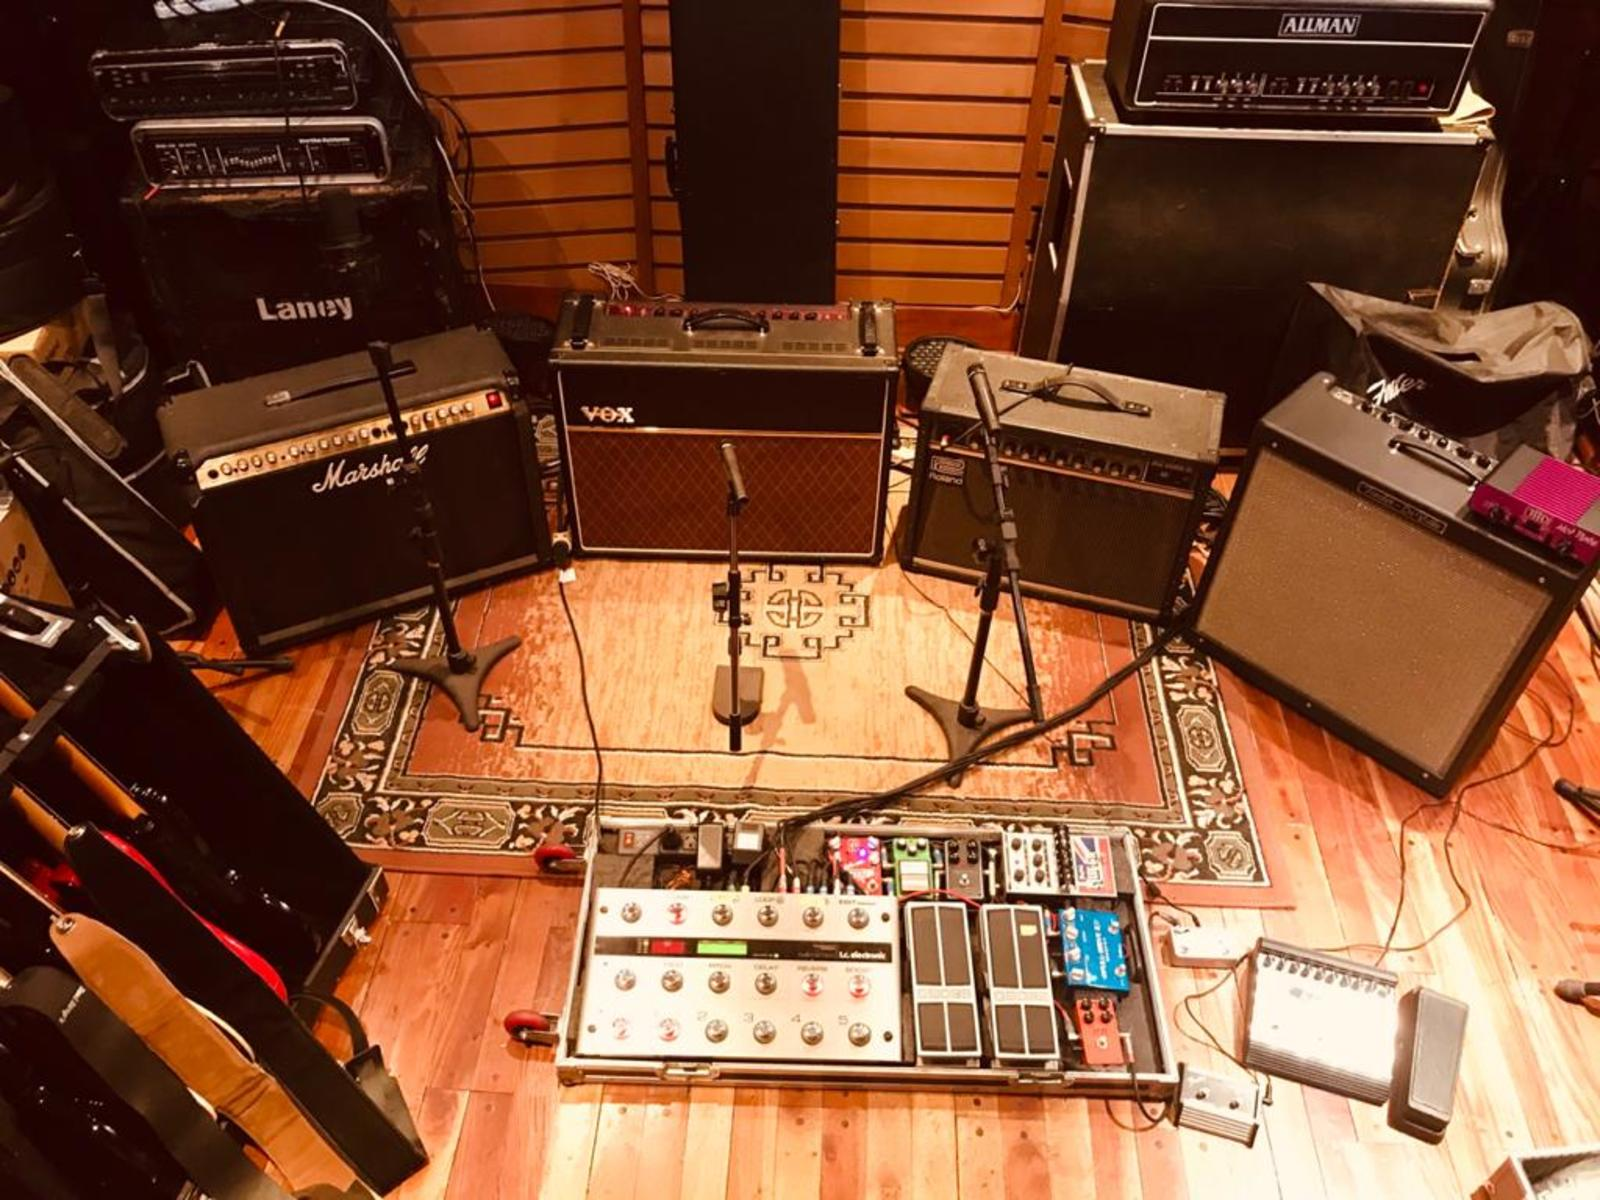 Photo of Fulltone Fulldrive 2 and more gear in a pedalboard and studio